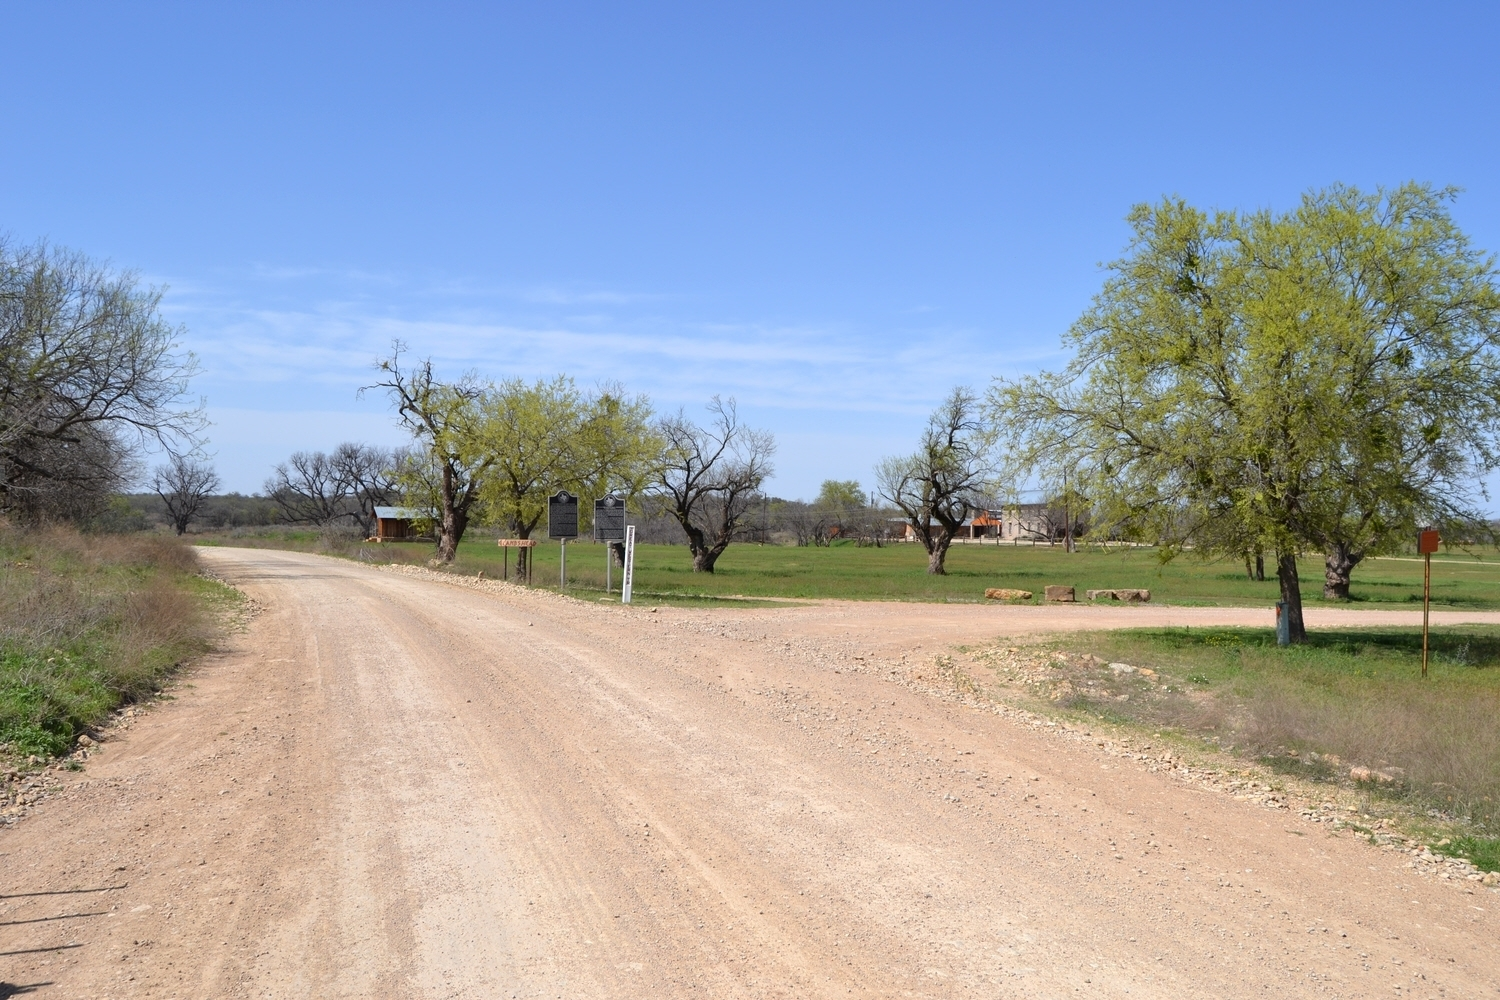 View to West on County Road 184